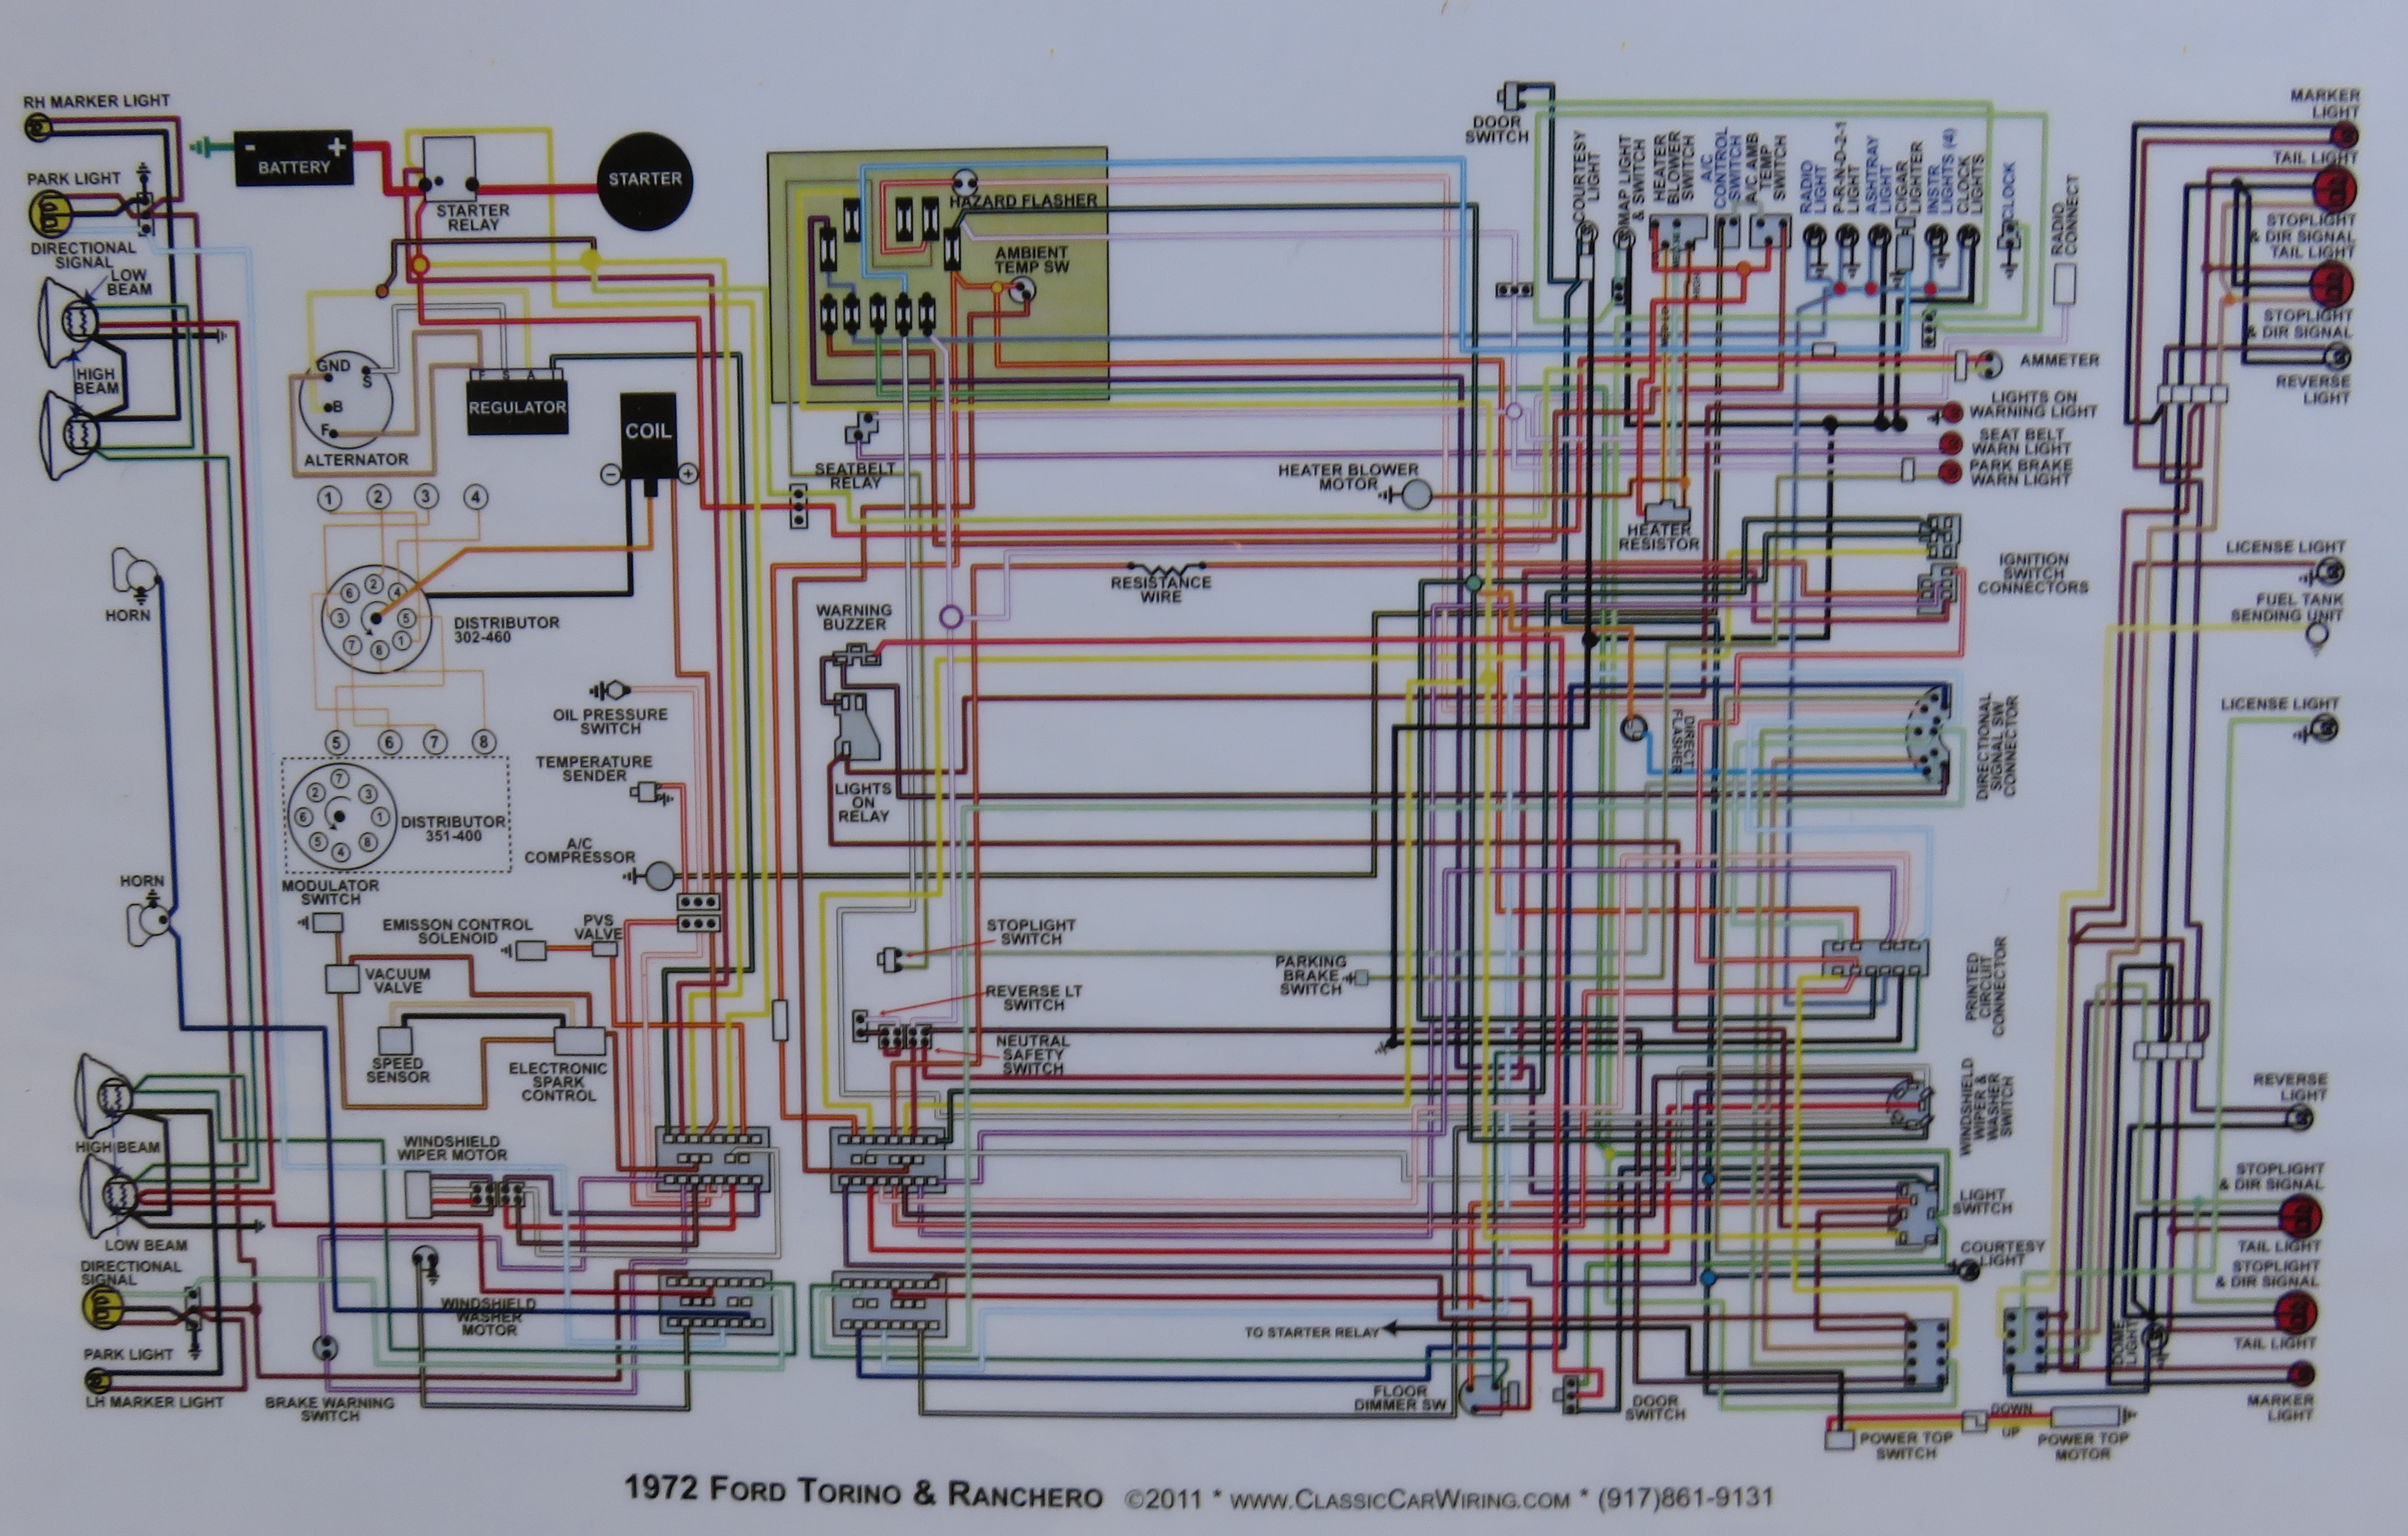 small resolution of au ford falcon wiring diagram free download wiring library rh 83 skriptoase de 63 ford falcon wiring diagrams 66 ford falcon wiring diagrams